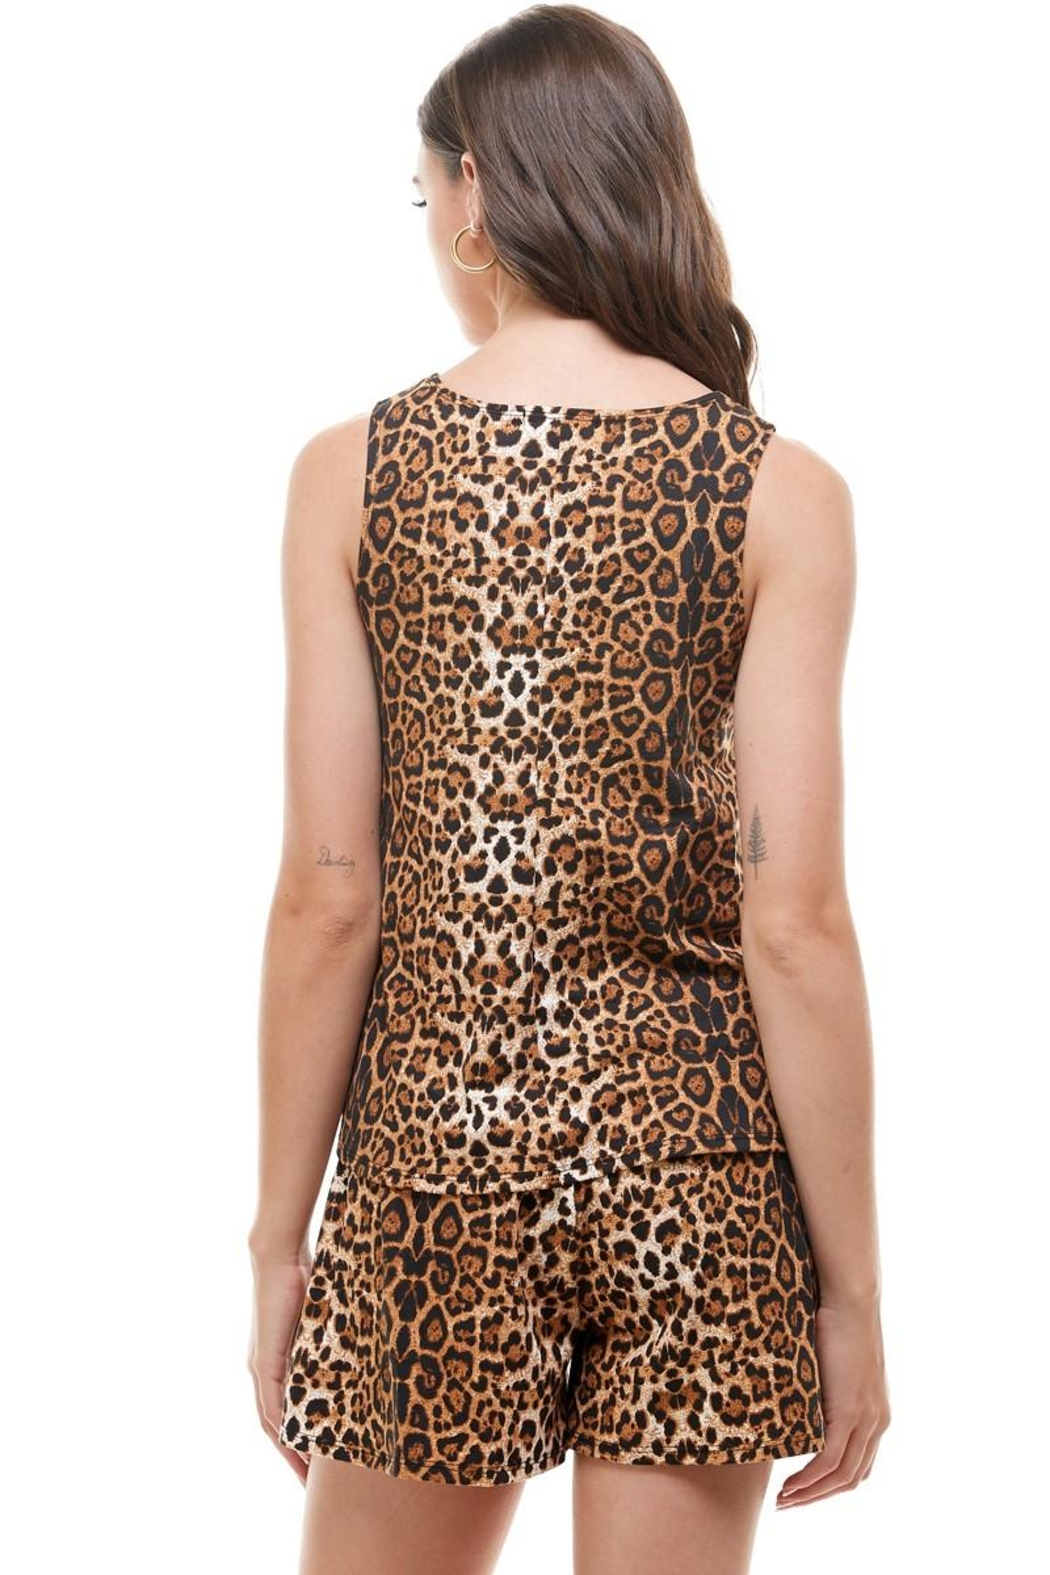 Miley and Molly Lounge Wear Set Zebra Leopard Animal Sleeveless Top And Short - Back Cropped Image